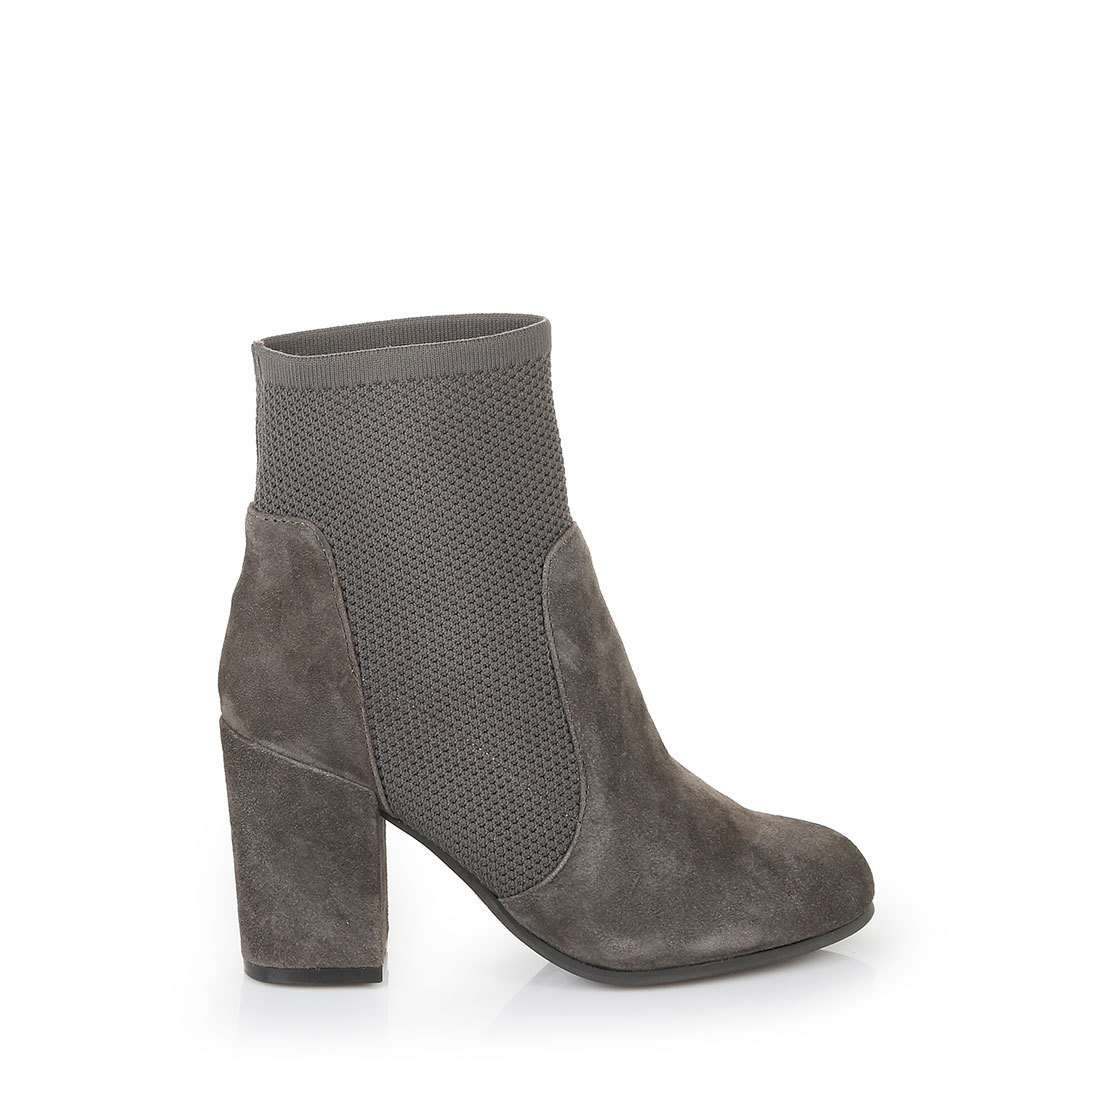 buffalo ankle boots with stretchy gusset in anthracite buy online in buffalo online shop buffalo. Black Bedroom Furniture Sets. Home Design Ideas